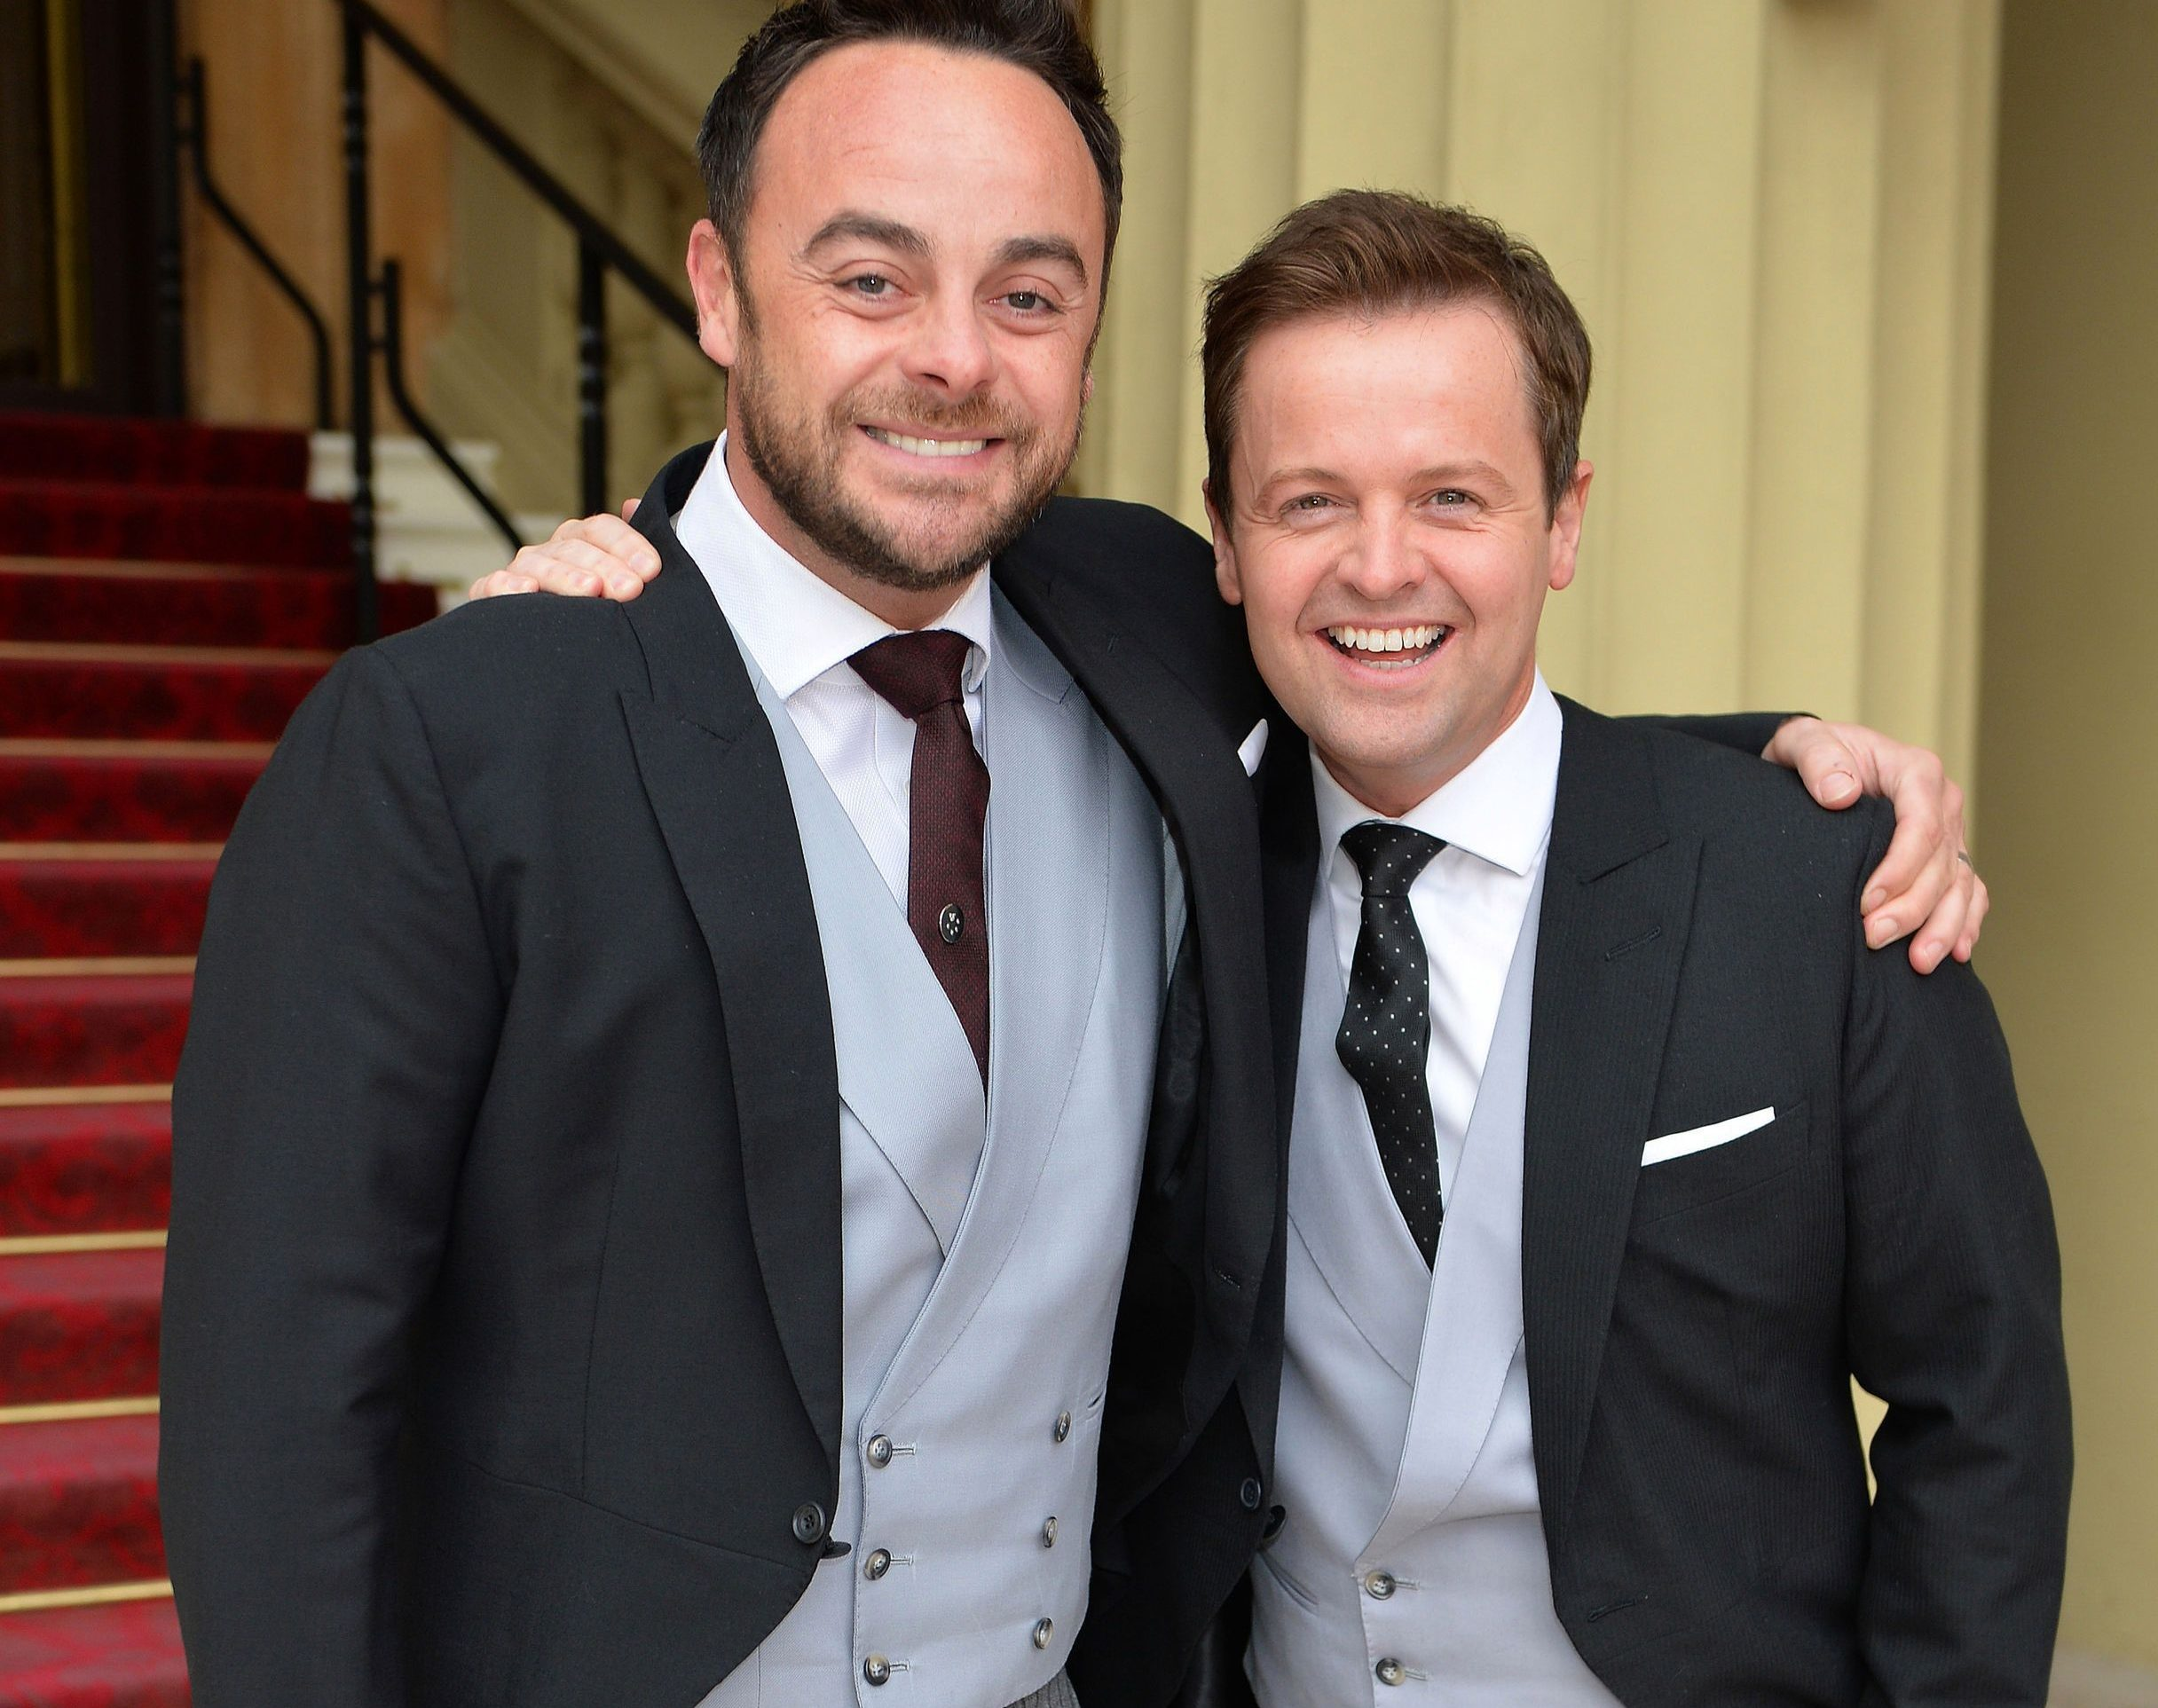 Ant McPartlin and Declan Donnelly took home £12,000 per day in 2018 – even though Ant took year off